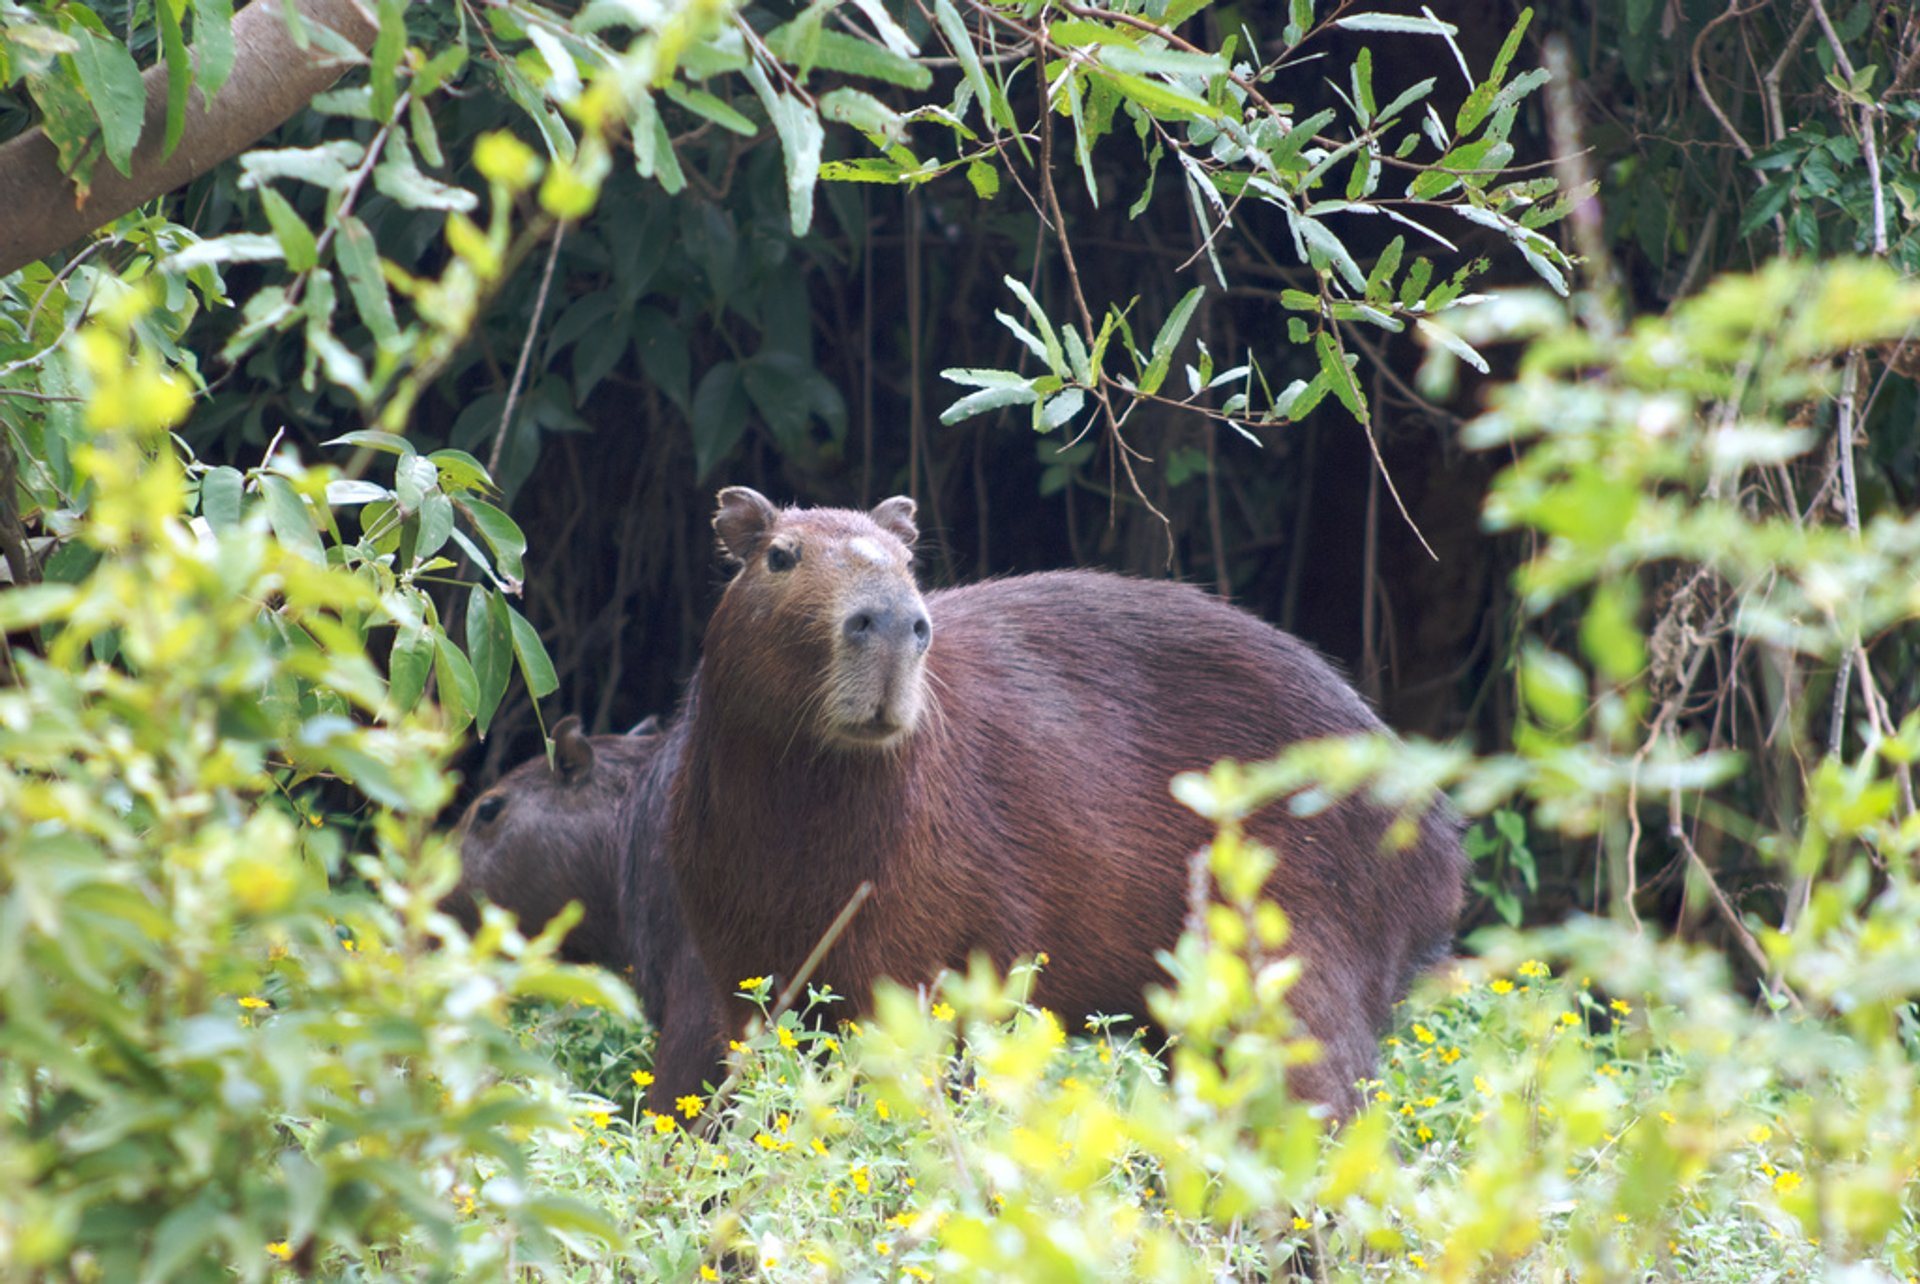 Capybara in Bolivia 2020 - Best Time